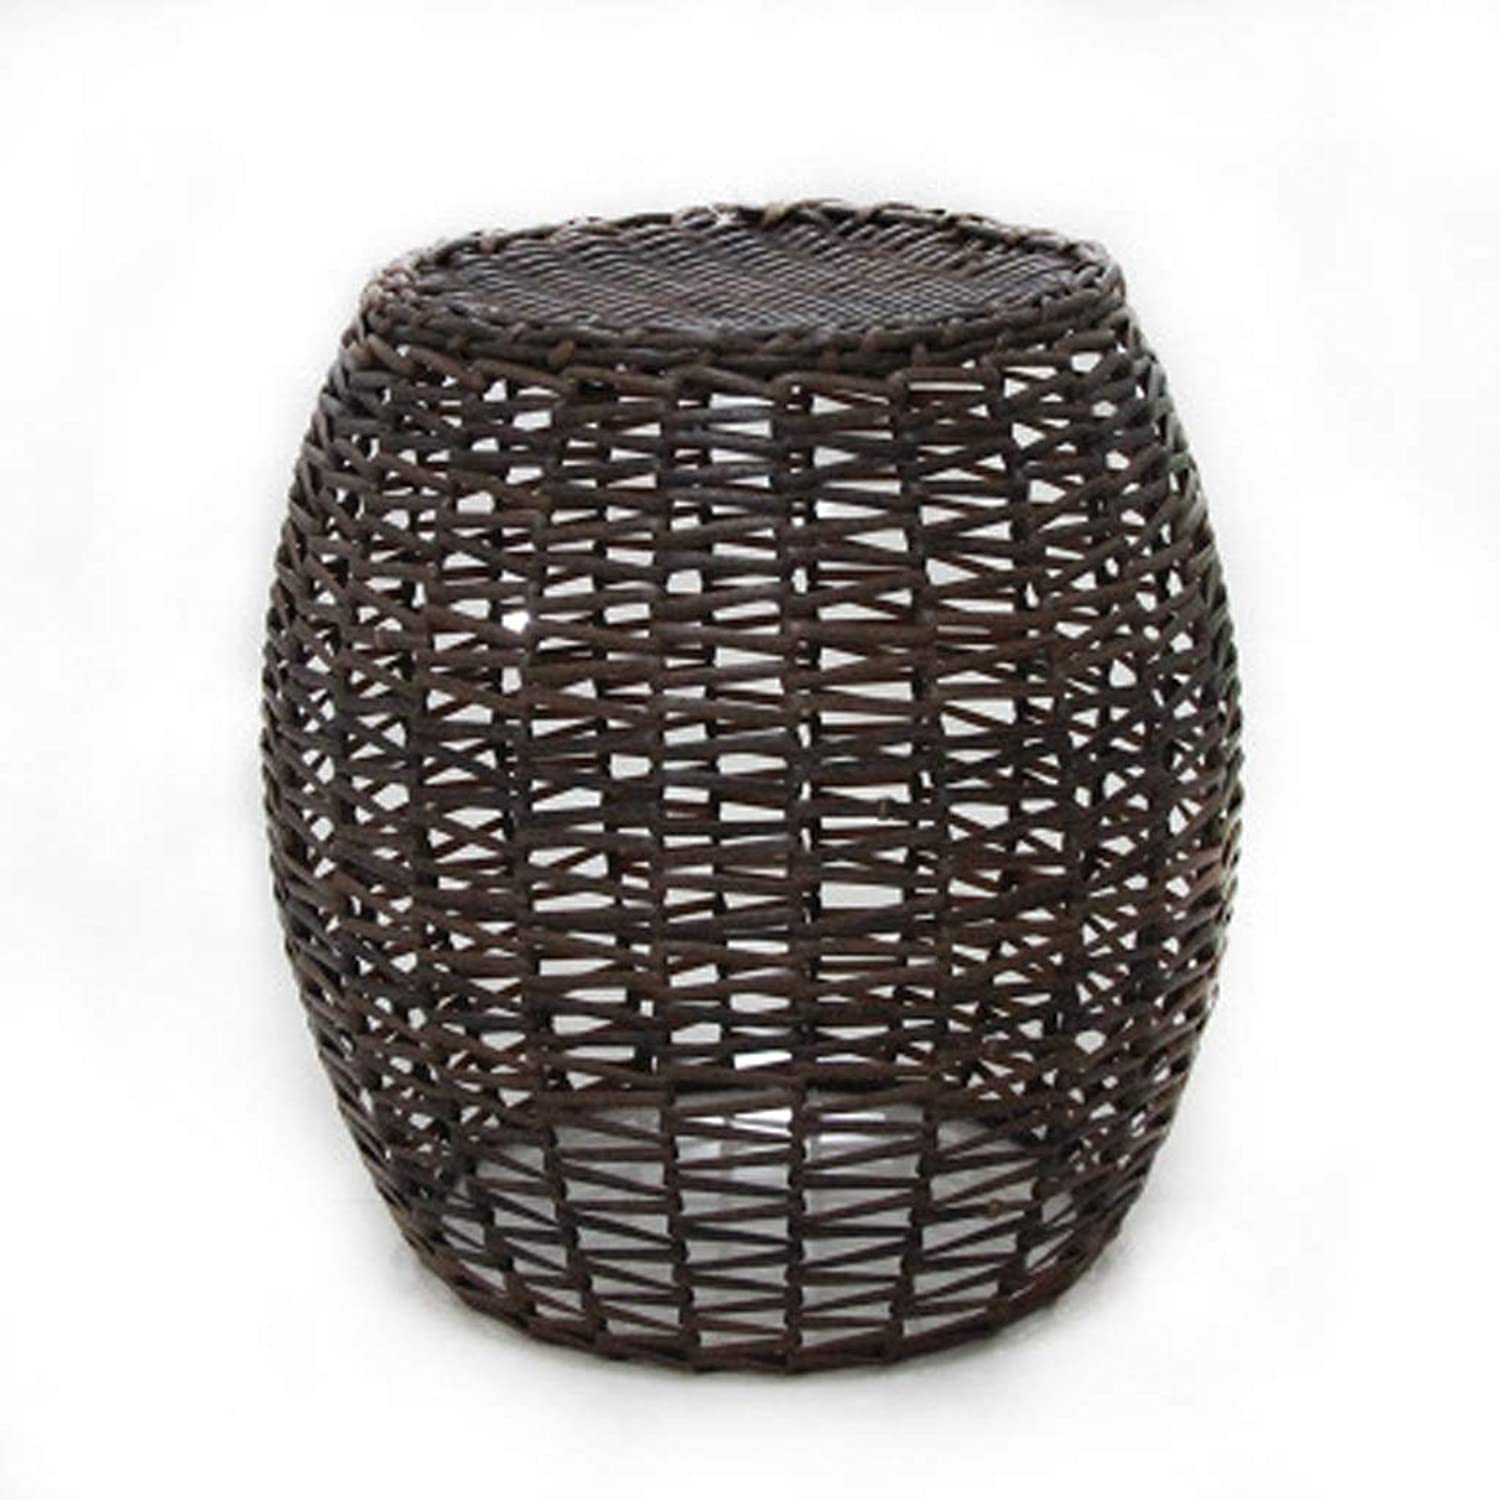 LLDDP Small Stool Creative Rattan Stool Small Stool Weaving Small Round Stool Sofa Stool Change shoes Bench Bed Tail Stool Footstool (color   D)